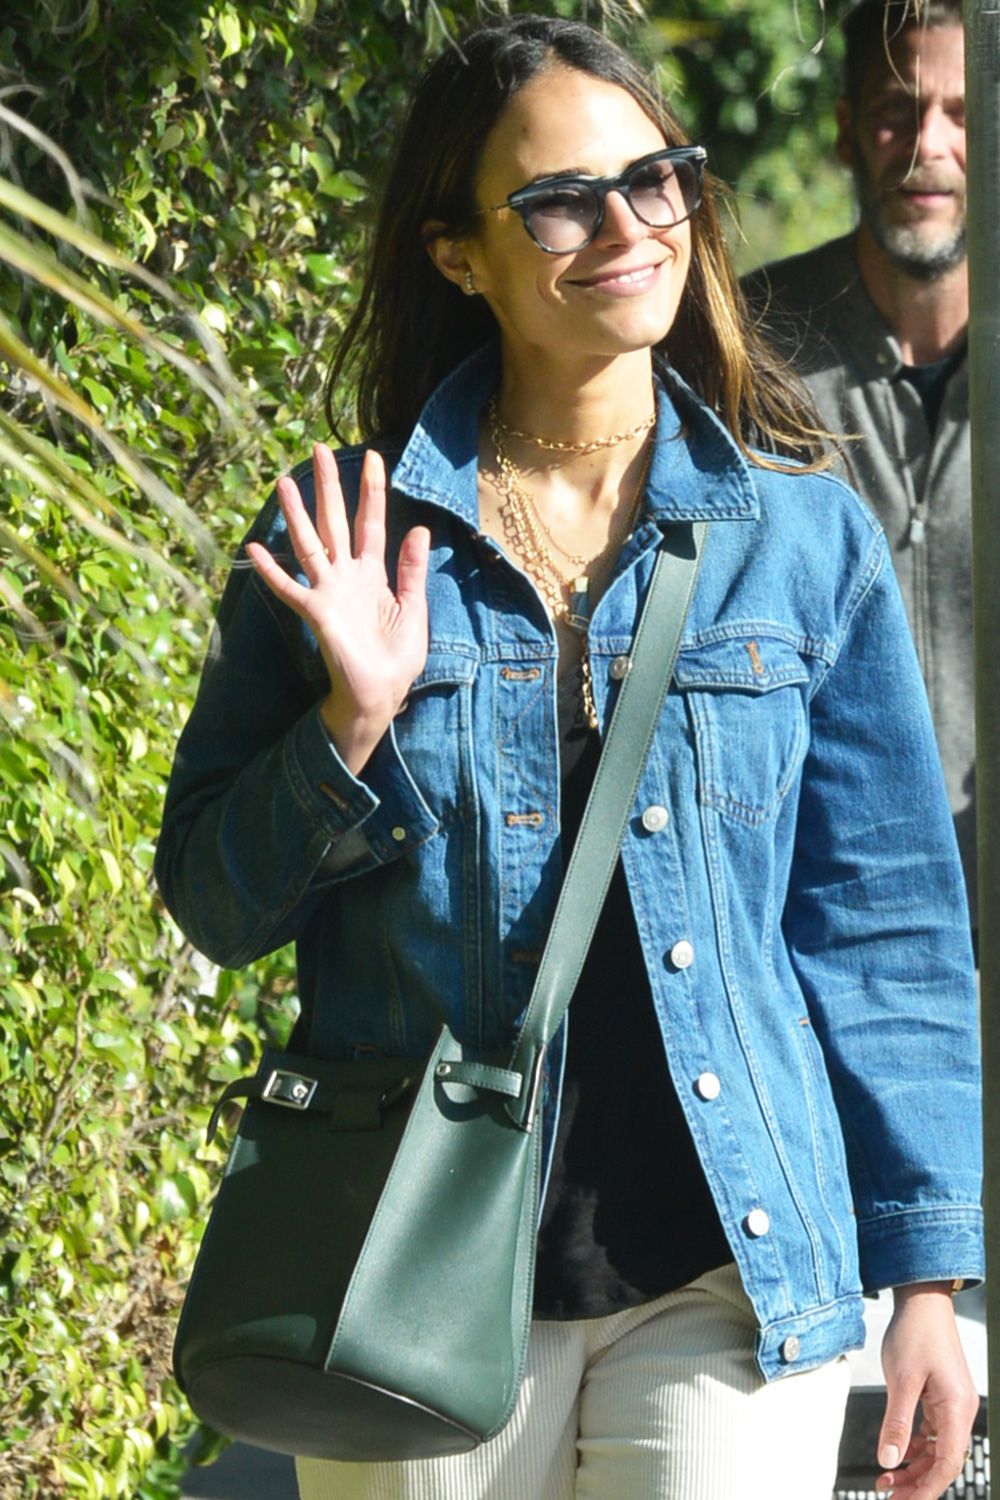 Jordana Brewster Keeps A Sunny Outlook With A Wave Hello And Wearing A Jacket That Says Have A Nice Day As She And Her Family Are Spotted Out For A Walk During The Coronavirus Lockdown In Brentwood, Ca